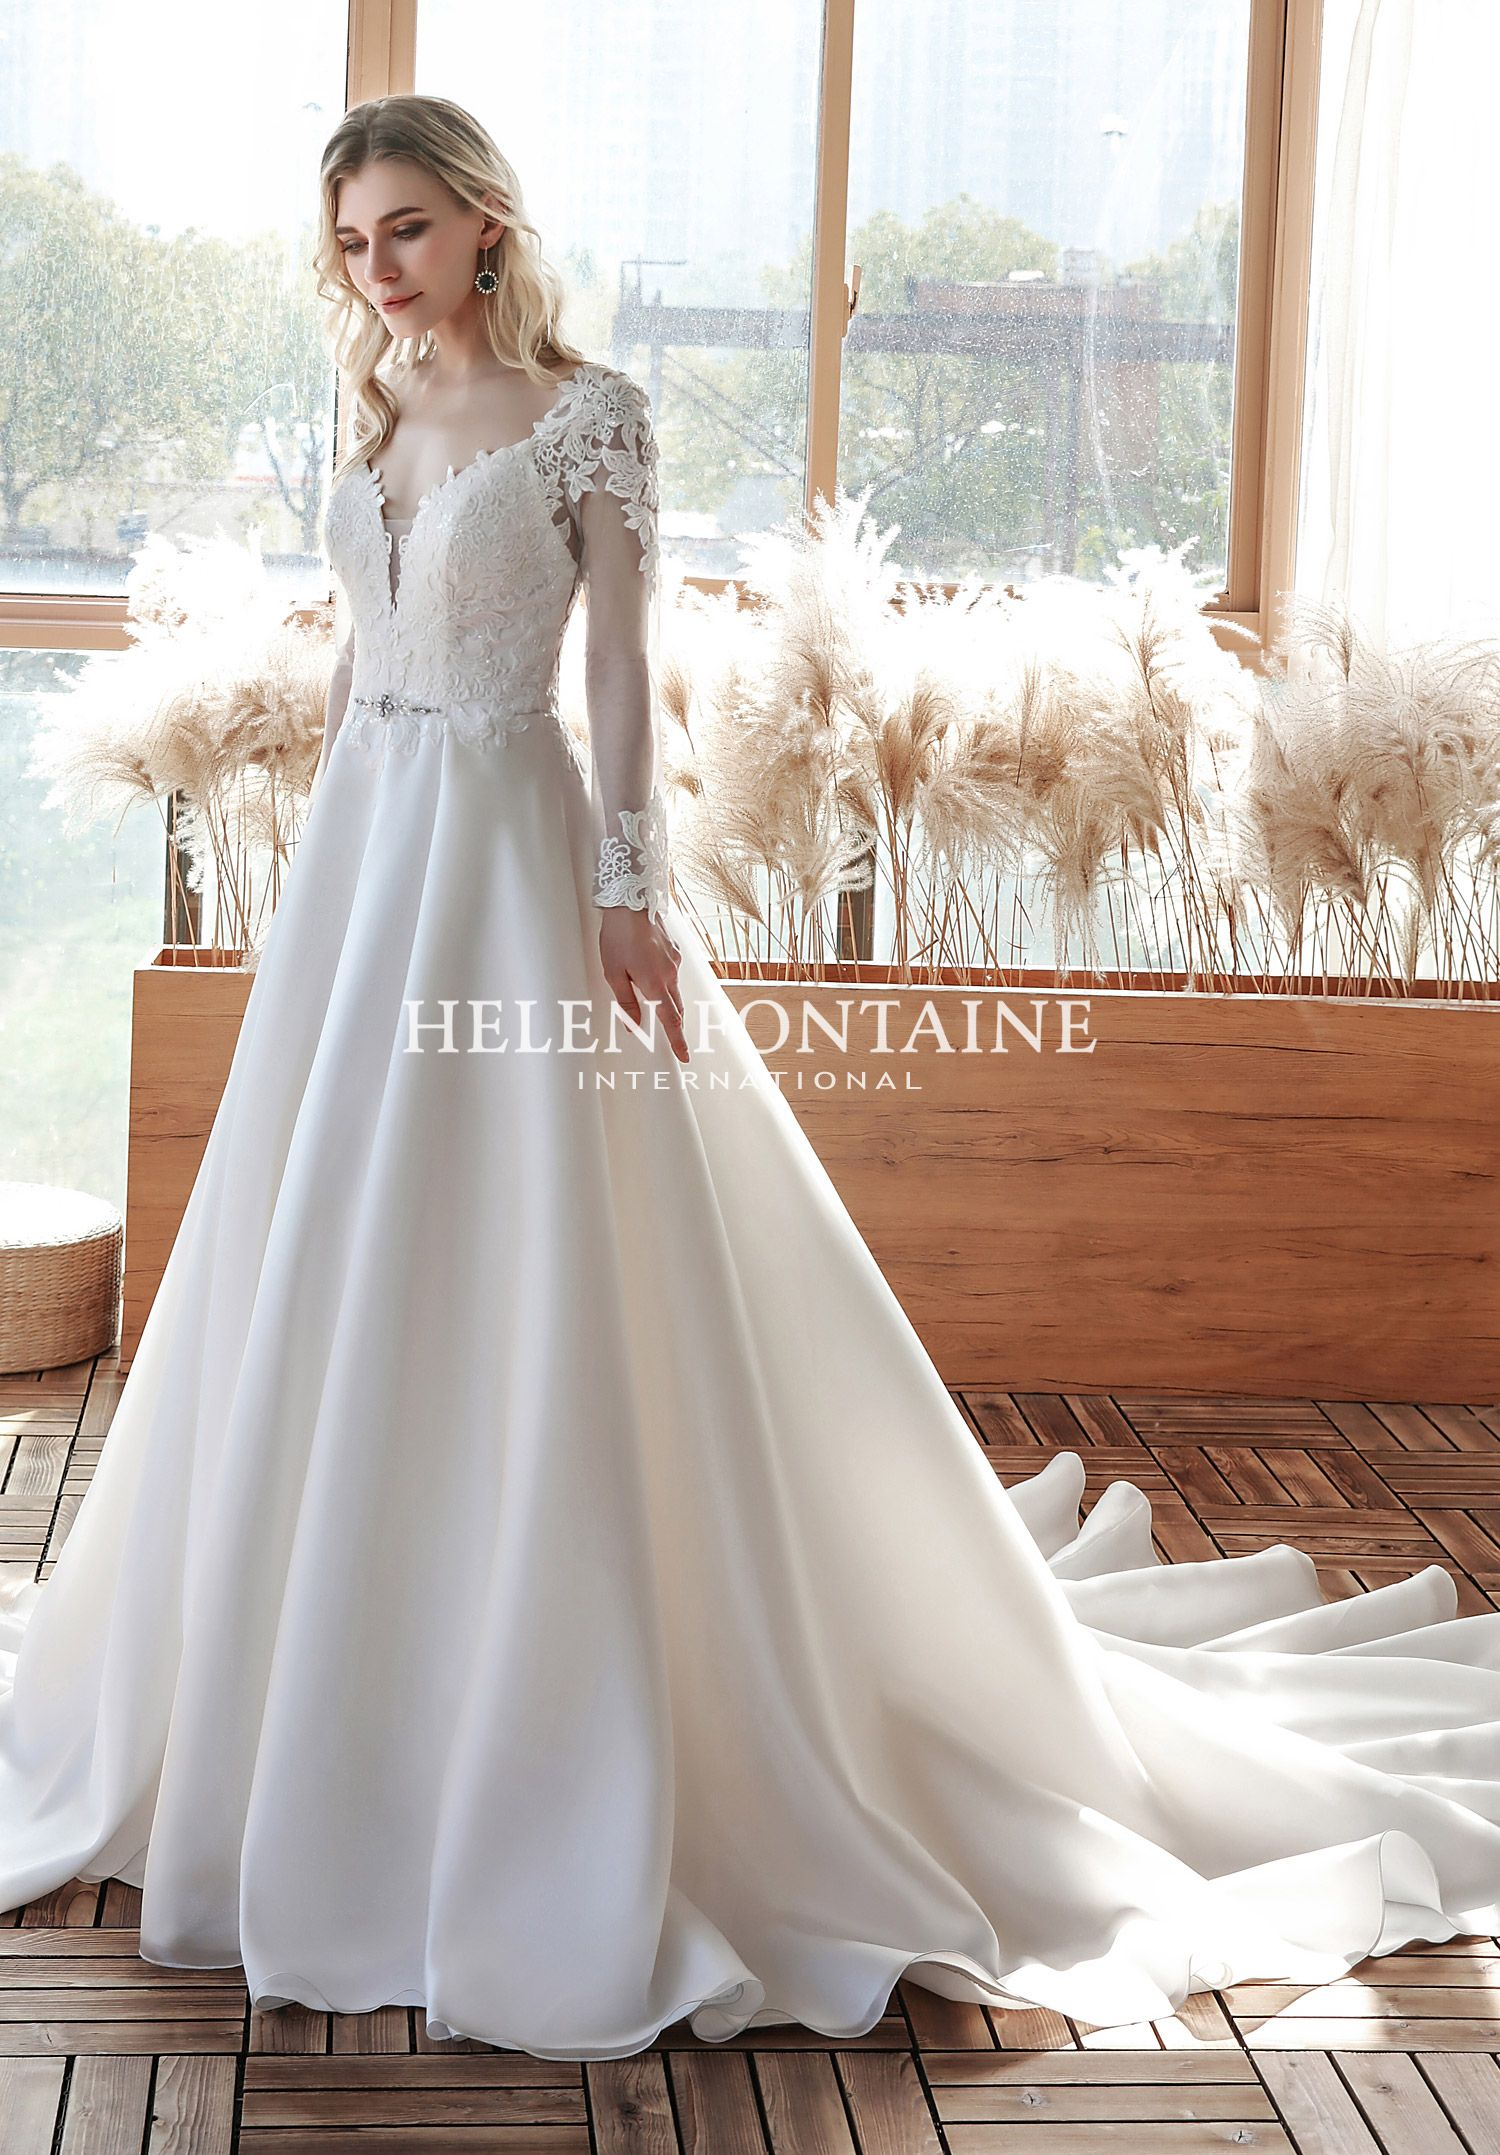 Helen Fontaine Style 4180 In 2020 Wedding Dress Prices Wedding Dresses Ball Gowns